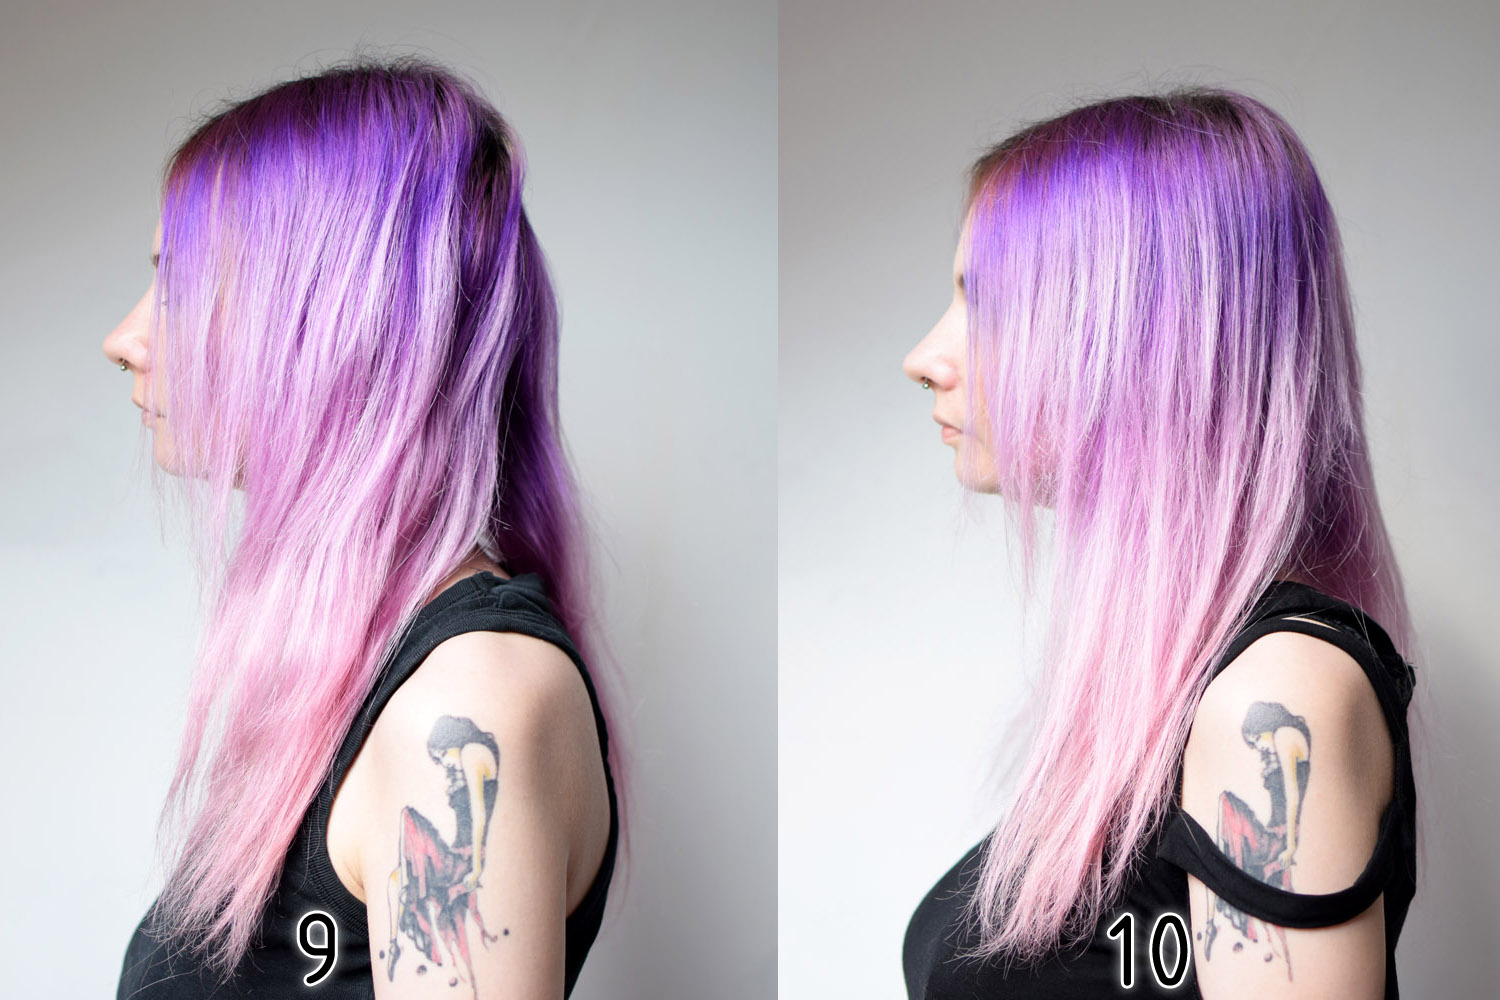 tag astuces cheveux coloration coloration semi permanente coloration vegan conseils dure electric lava galaxy hair hair manic panic new rose - Coloration Semi Permanente Bleu